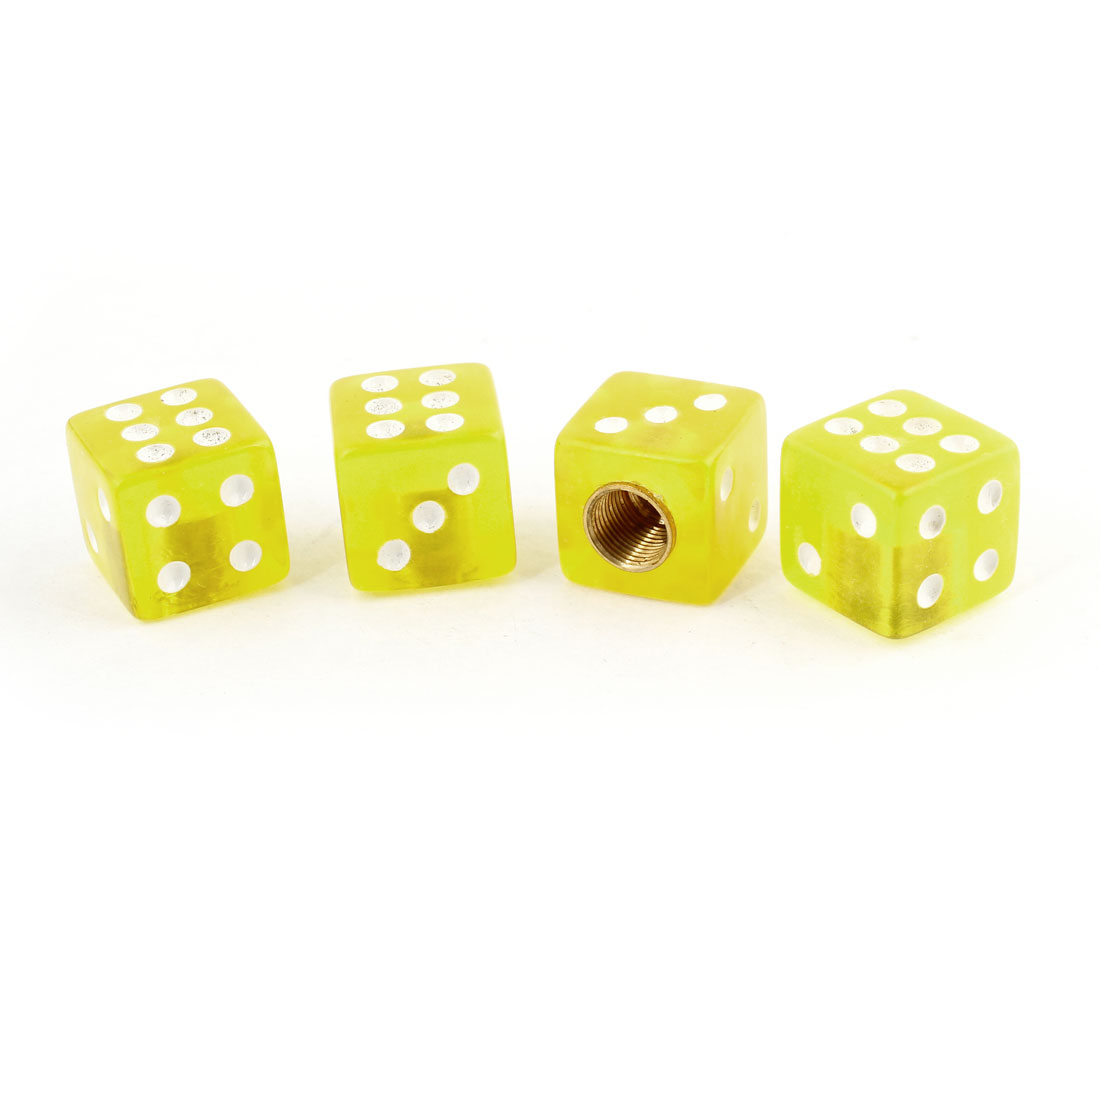 Vehicle Car Tyre Valve Cap Cover Dice Shape Yellow 4 Pcs